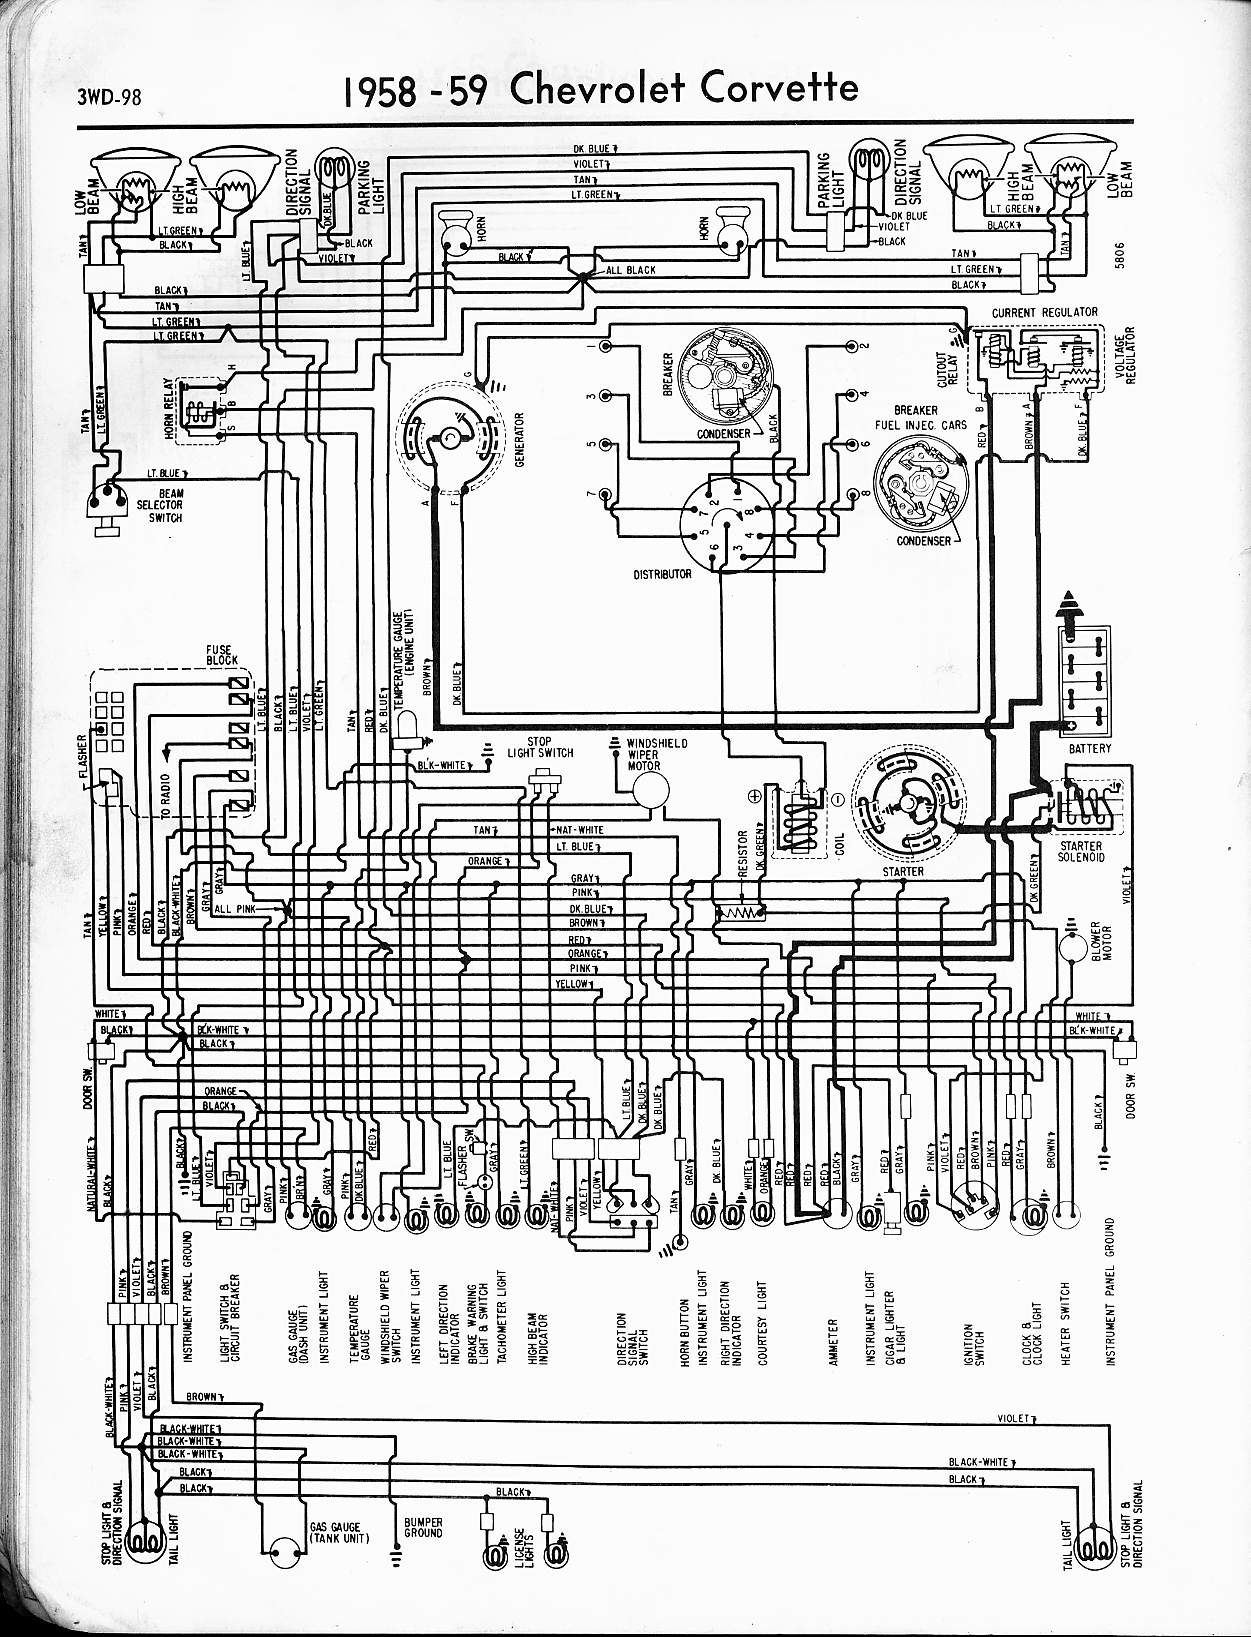 79 corvette horn diagram smart wiring diagrams u2022 rh krakencraft co